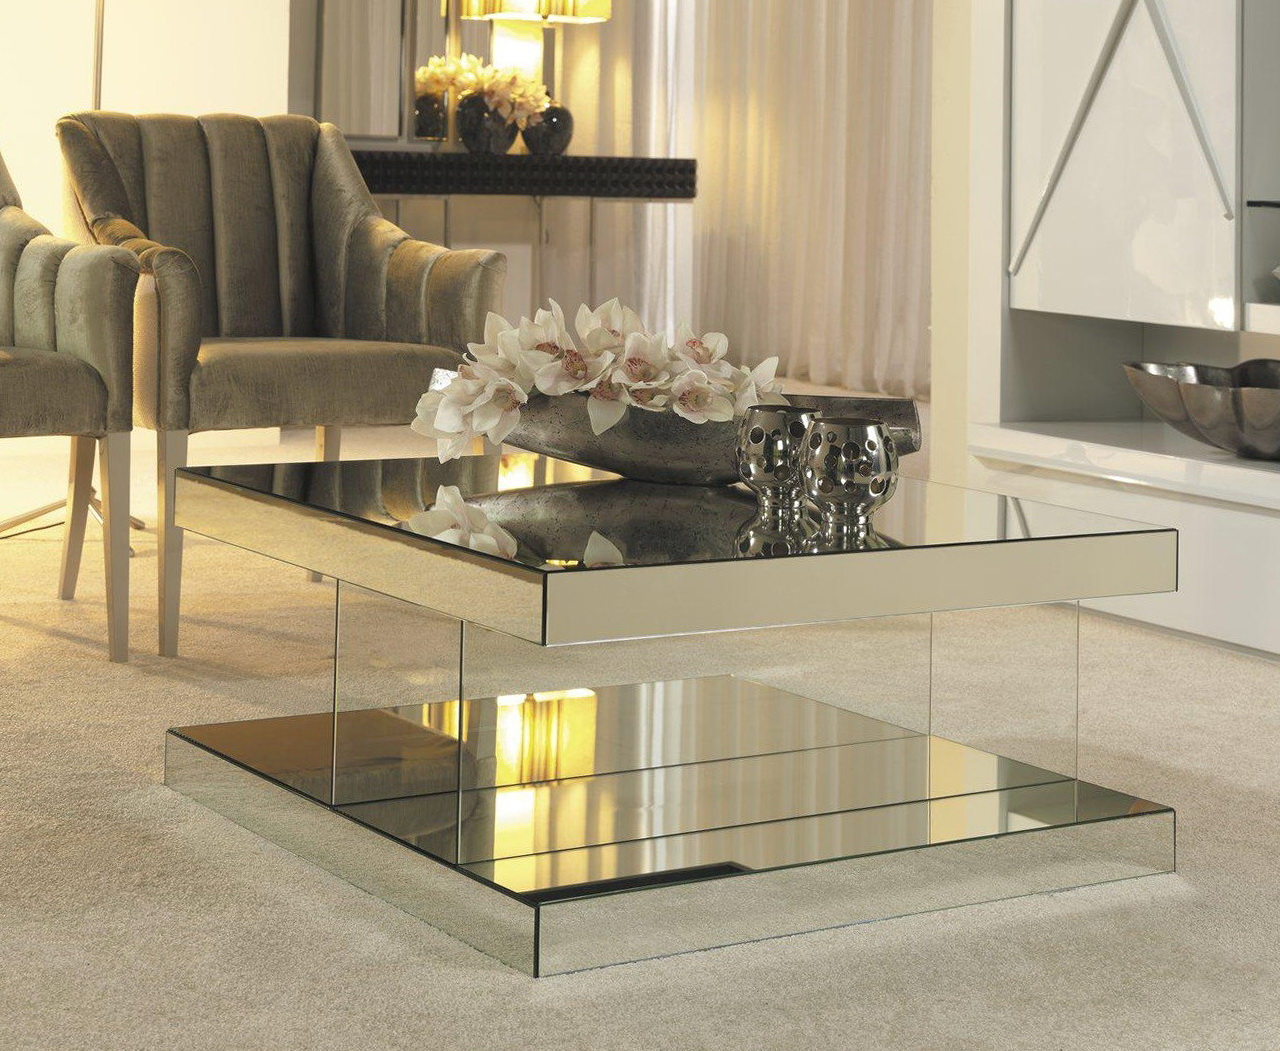 Mirrored Coffee Table Tray | Mirrored Coffee Table | Infinity Mirror Coffee Table